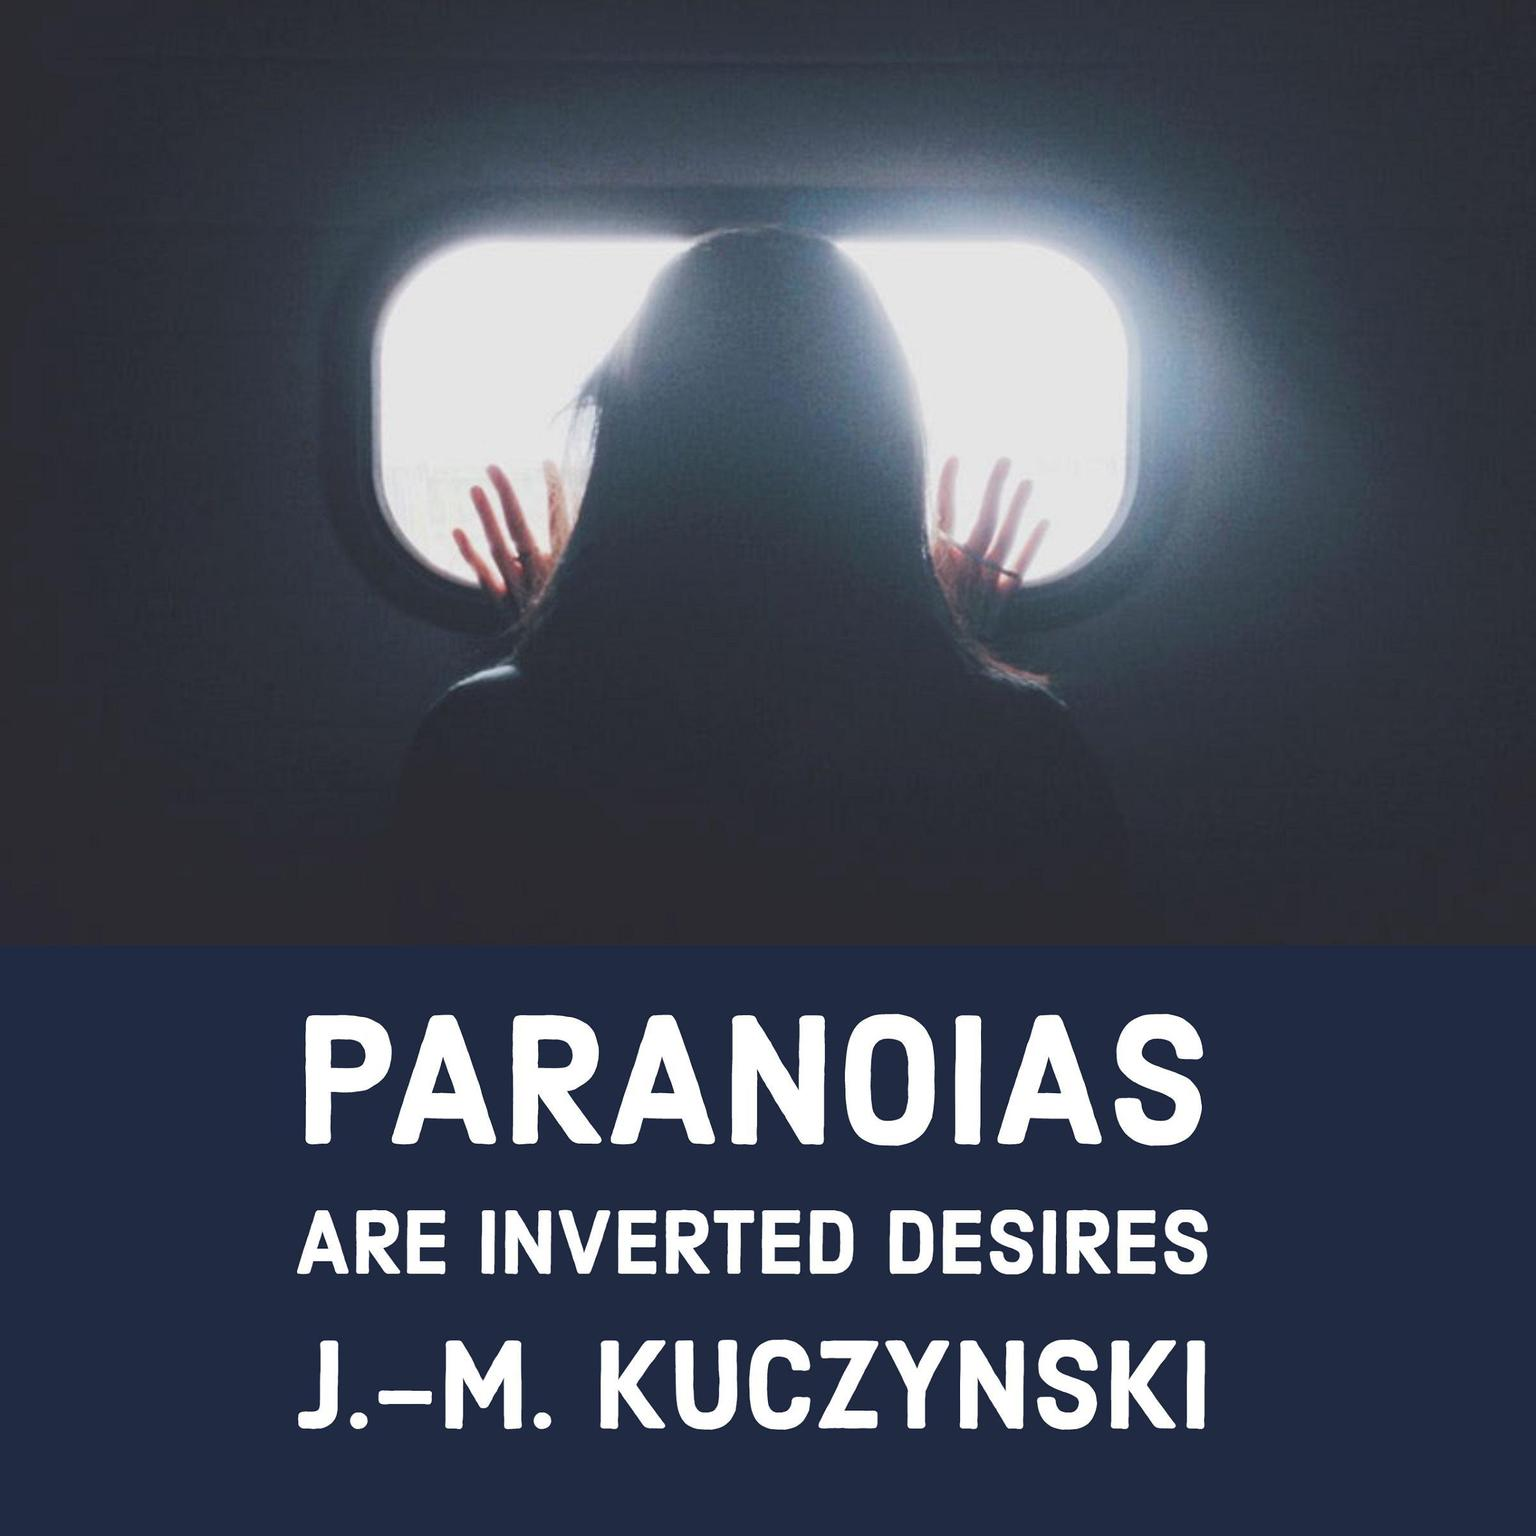 Printable Paranoias are Inverted Desires Audiobook Cover Art